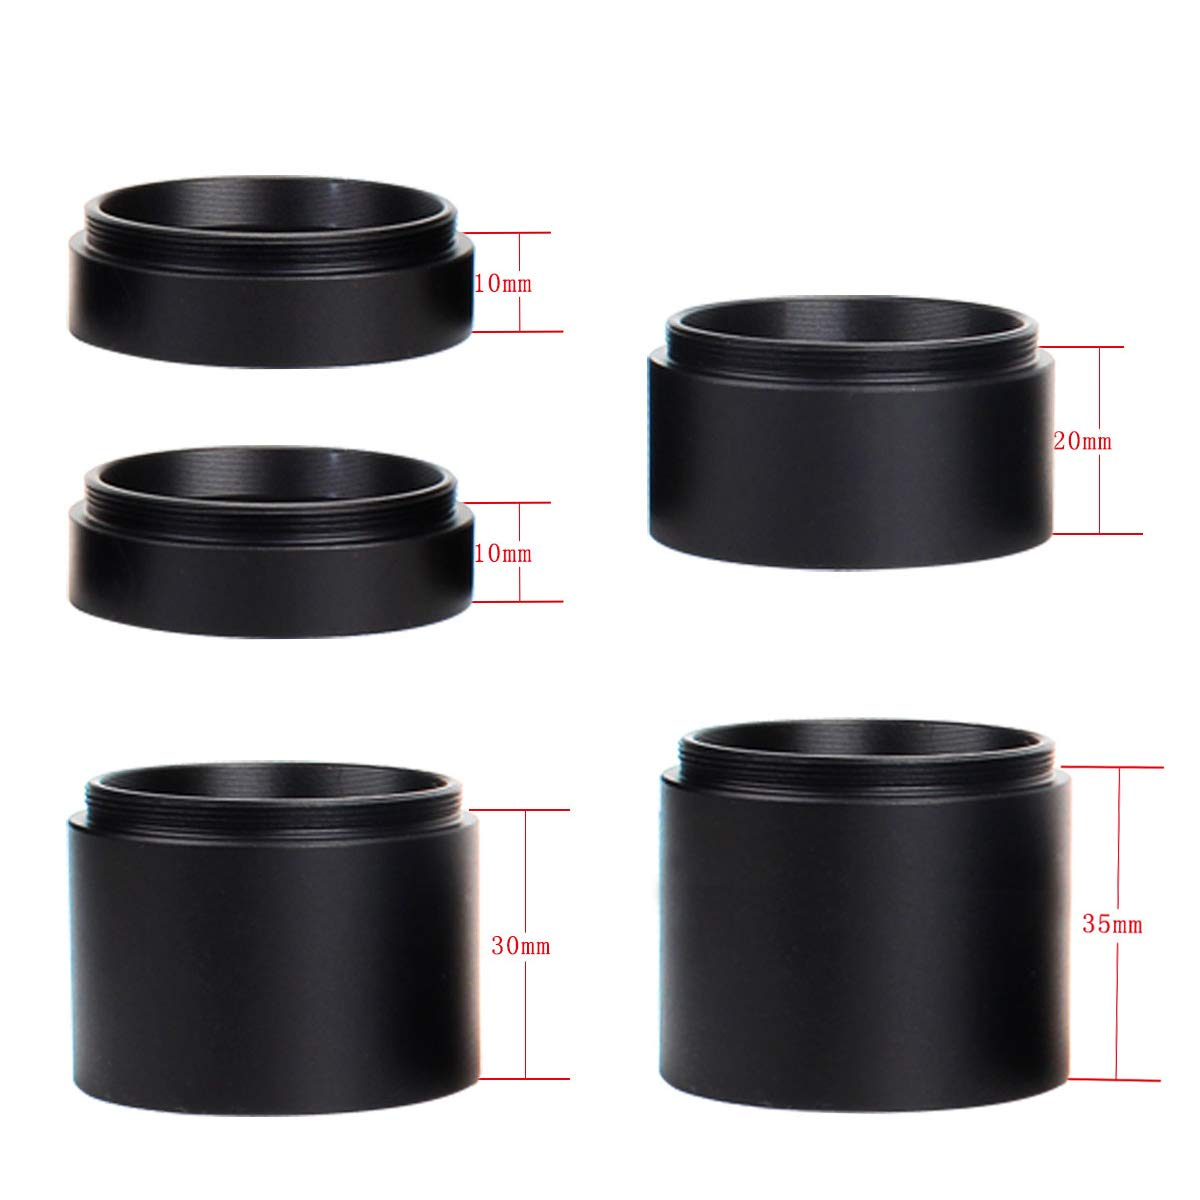 Gosky Astronomical M48 Extension Ring Kit - Extension Tube Adapter 5 pcs- Length 10mm 10mm 20mm 30mm 35mm - M48x0.75 on Both Sides - Accept 2inch Filters by Gosky